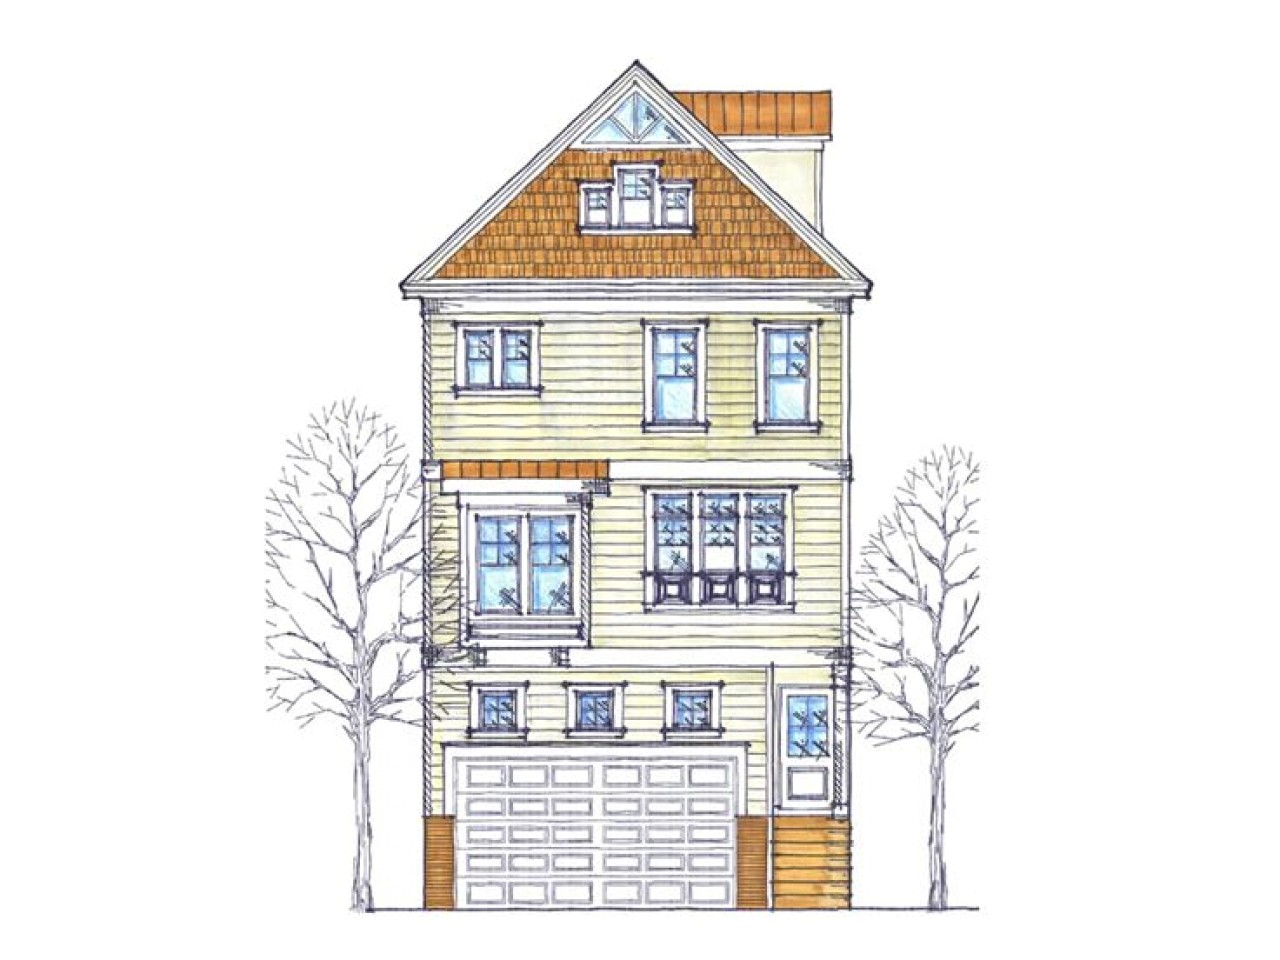 3 Story House Plans Small Lot Narrow One Bedroom House Plans 3 Story Narrow Lot House